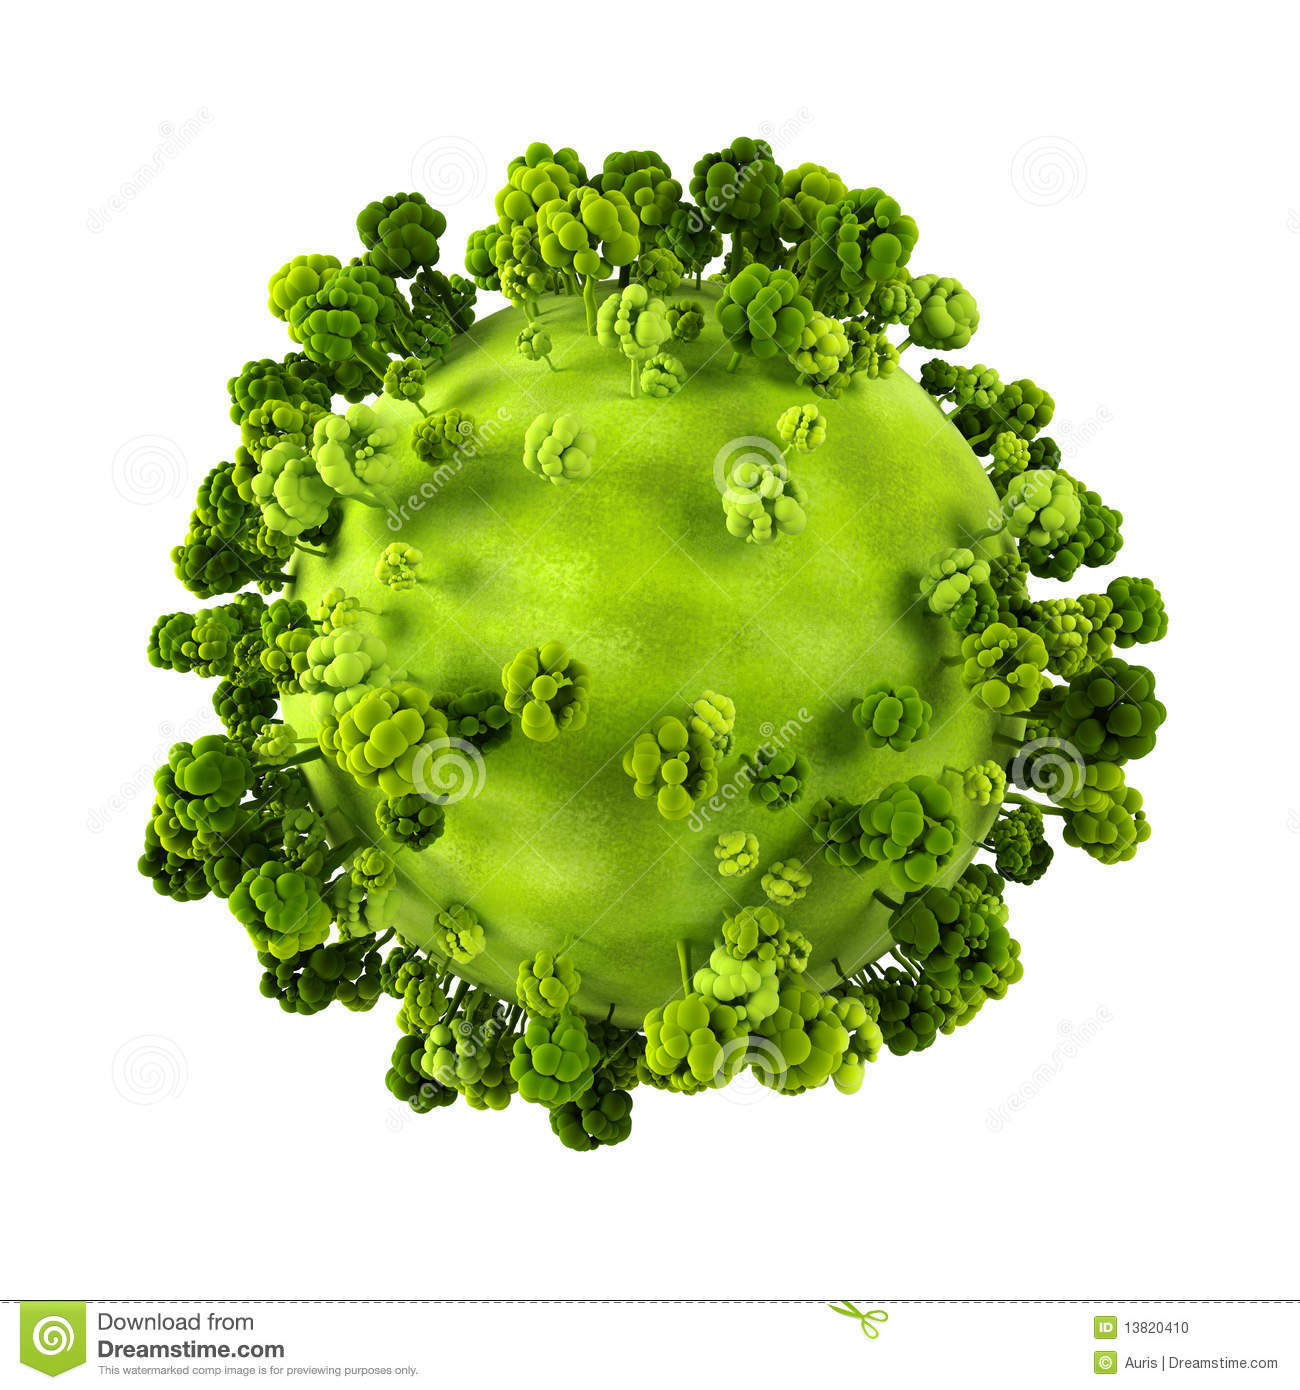 planet earth is with Stock Photo Small Green Pla  Image13820410 on Projectearth additionally Cat Felis Catus additionally Erde Blauer Pla  Erdkugel 330301 in addition Erde 723334 additionally Helldivers.